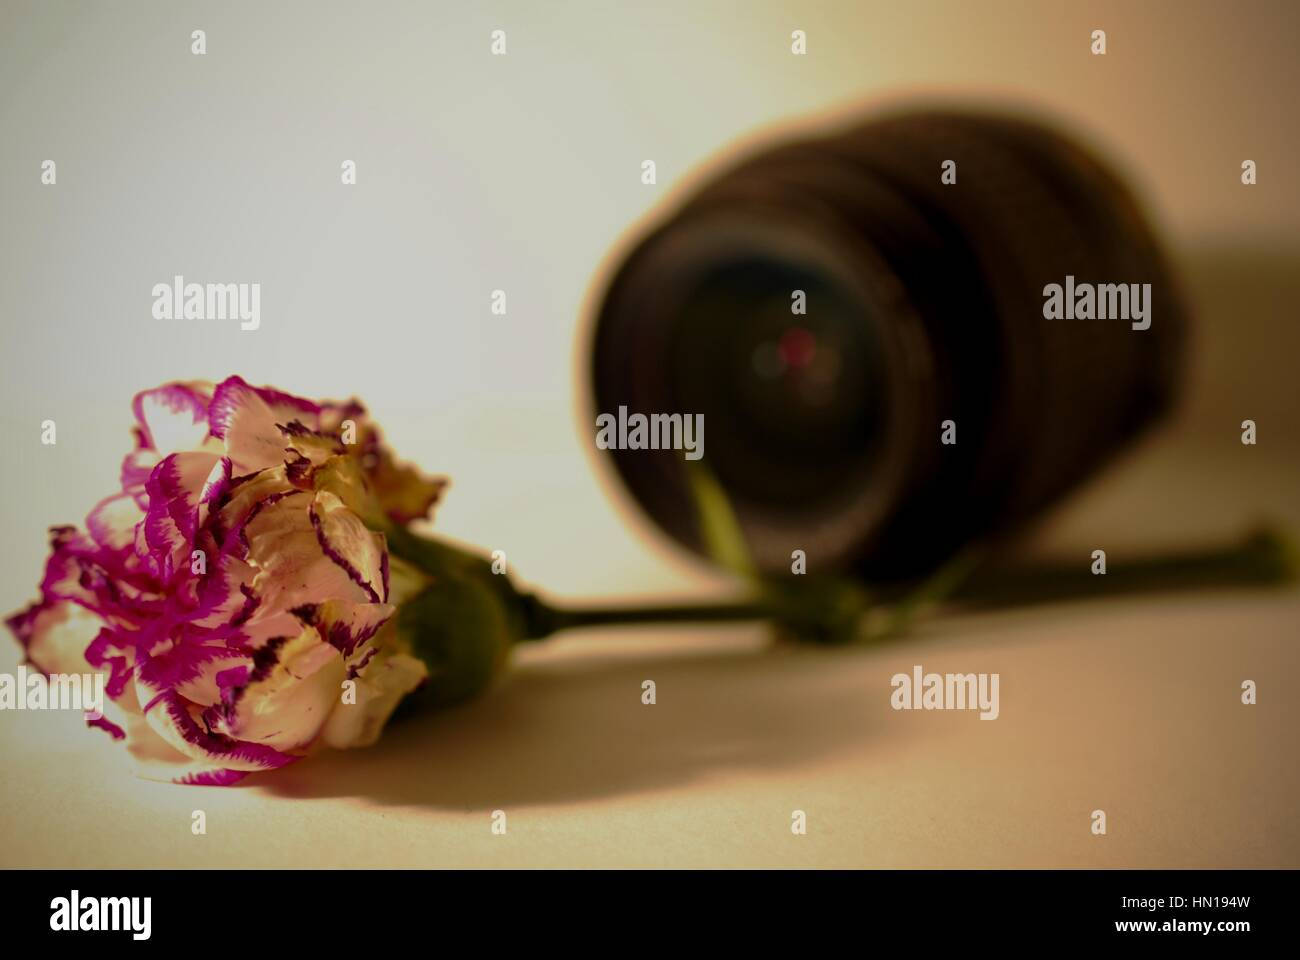 Fallen rose with camera lens in background - Stock Image